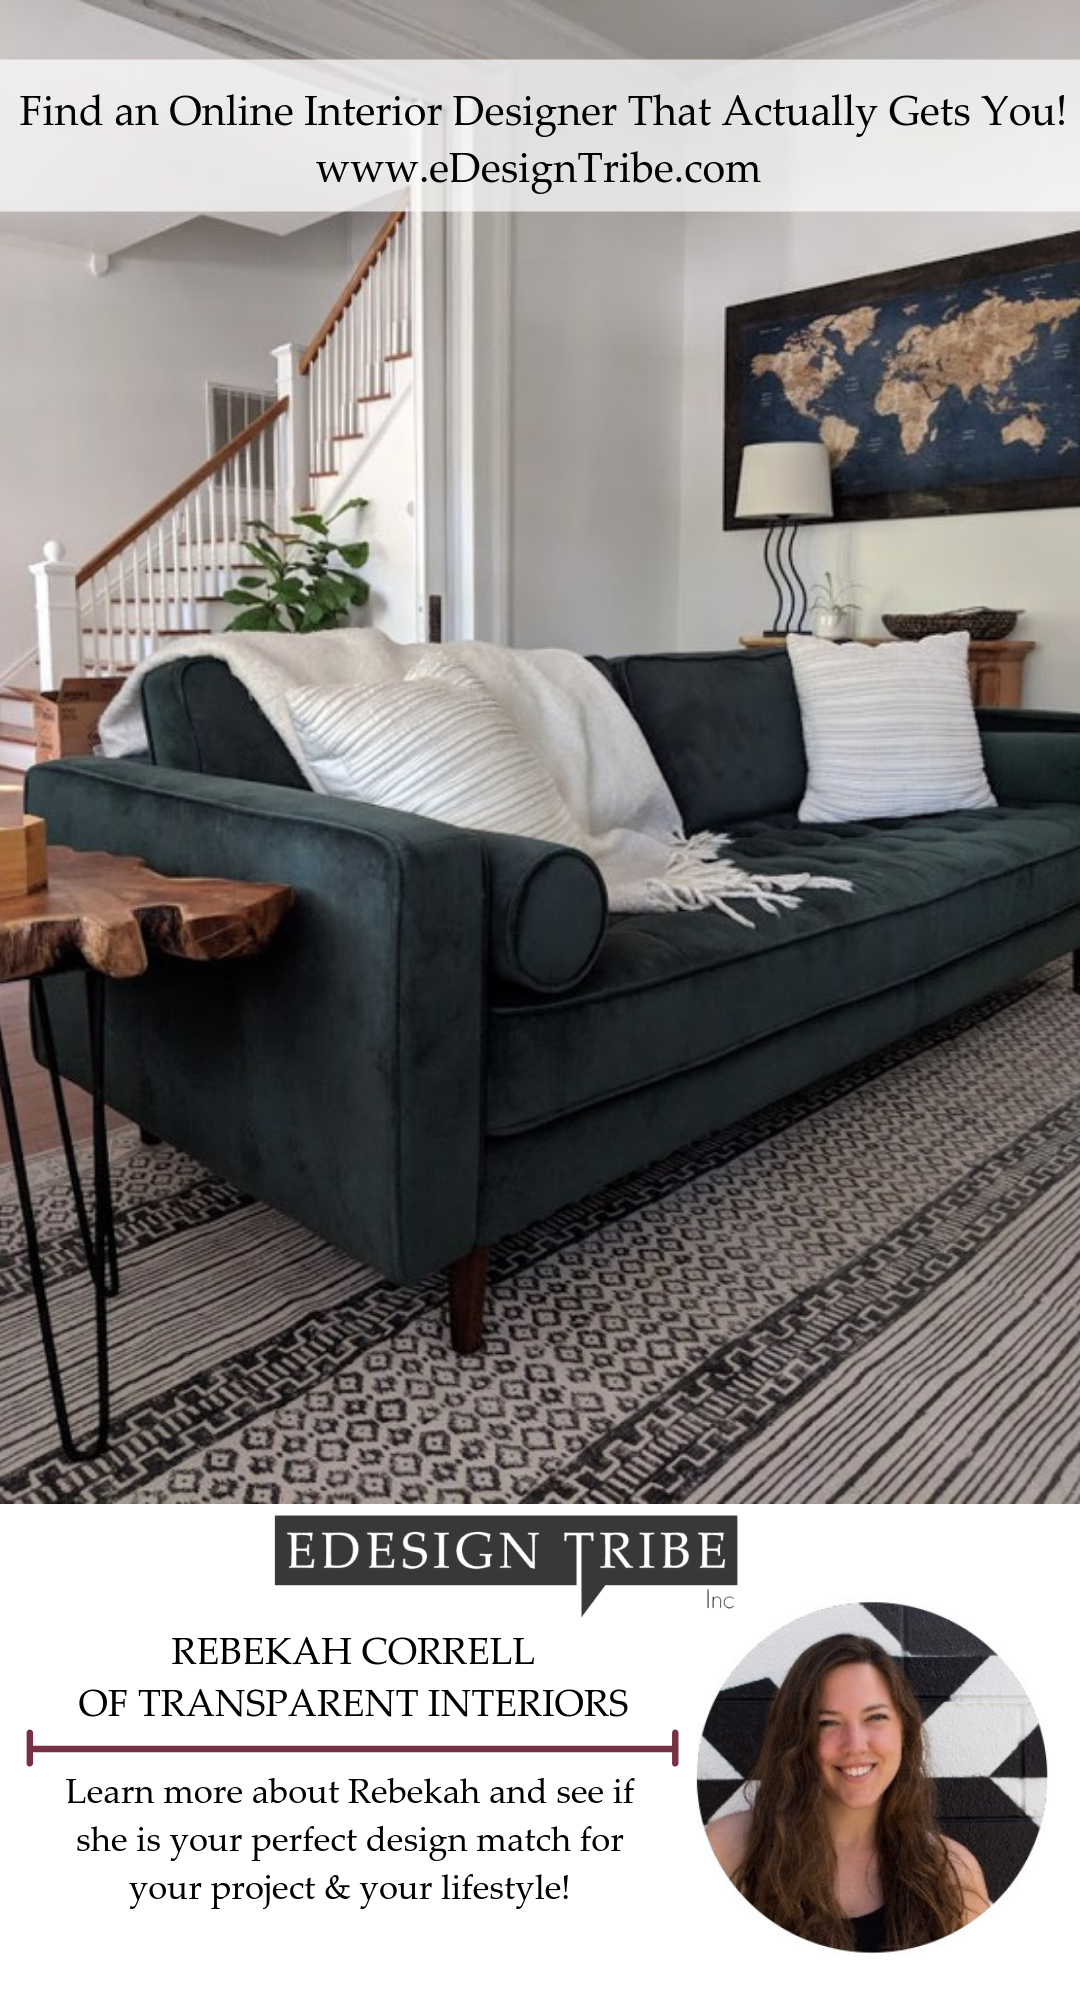 Give your home a voice. You learn a lot about people by walking into   their home: their passions, style, and values. Whether you know it or   not, your home speaks for you.   #Bohemian #Costal #CommercialDesign #Eclectic #FrenchCountry #Global   #Holistic #Industrial #Mid-Century #Modern #Minimalis #tModern   #Modernarmhouse #Scandinavian #Urban #Modern #Vingtage